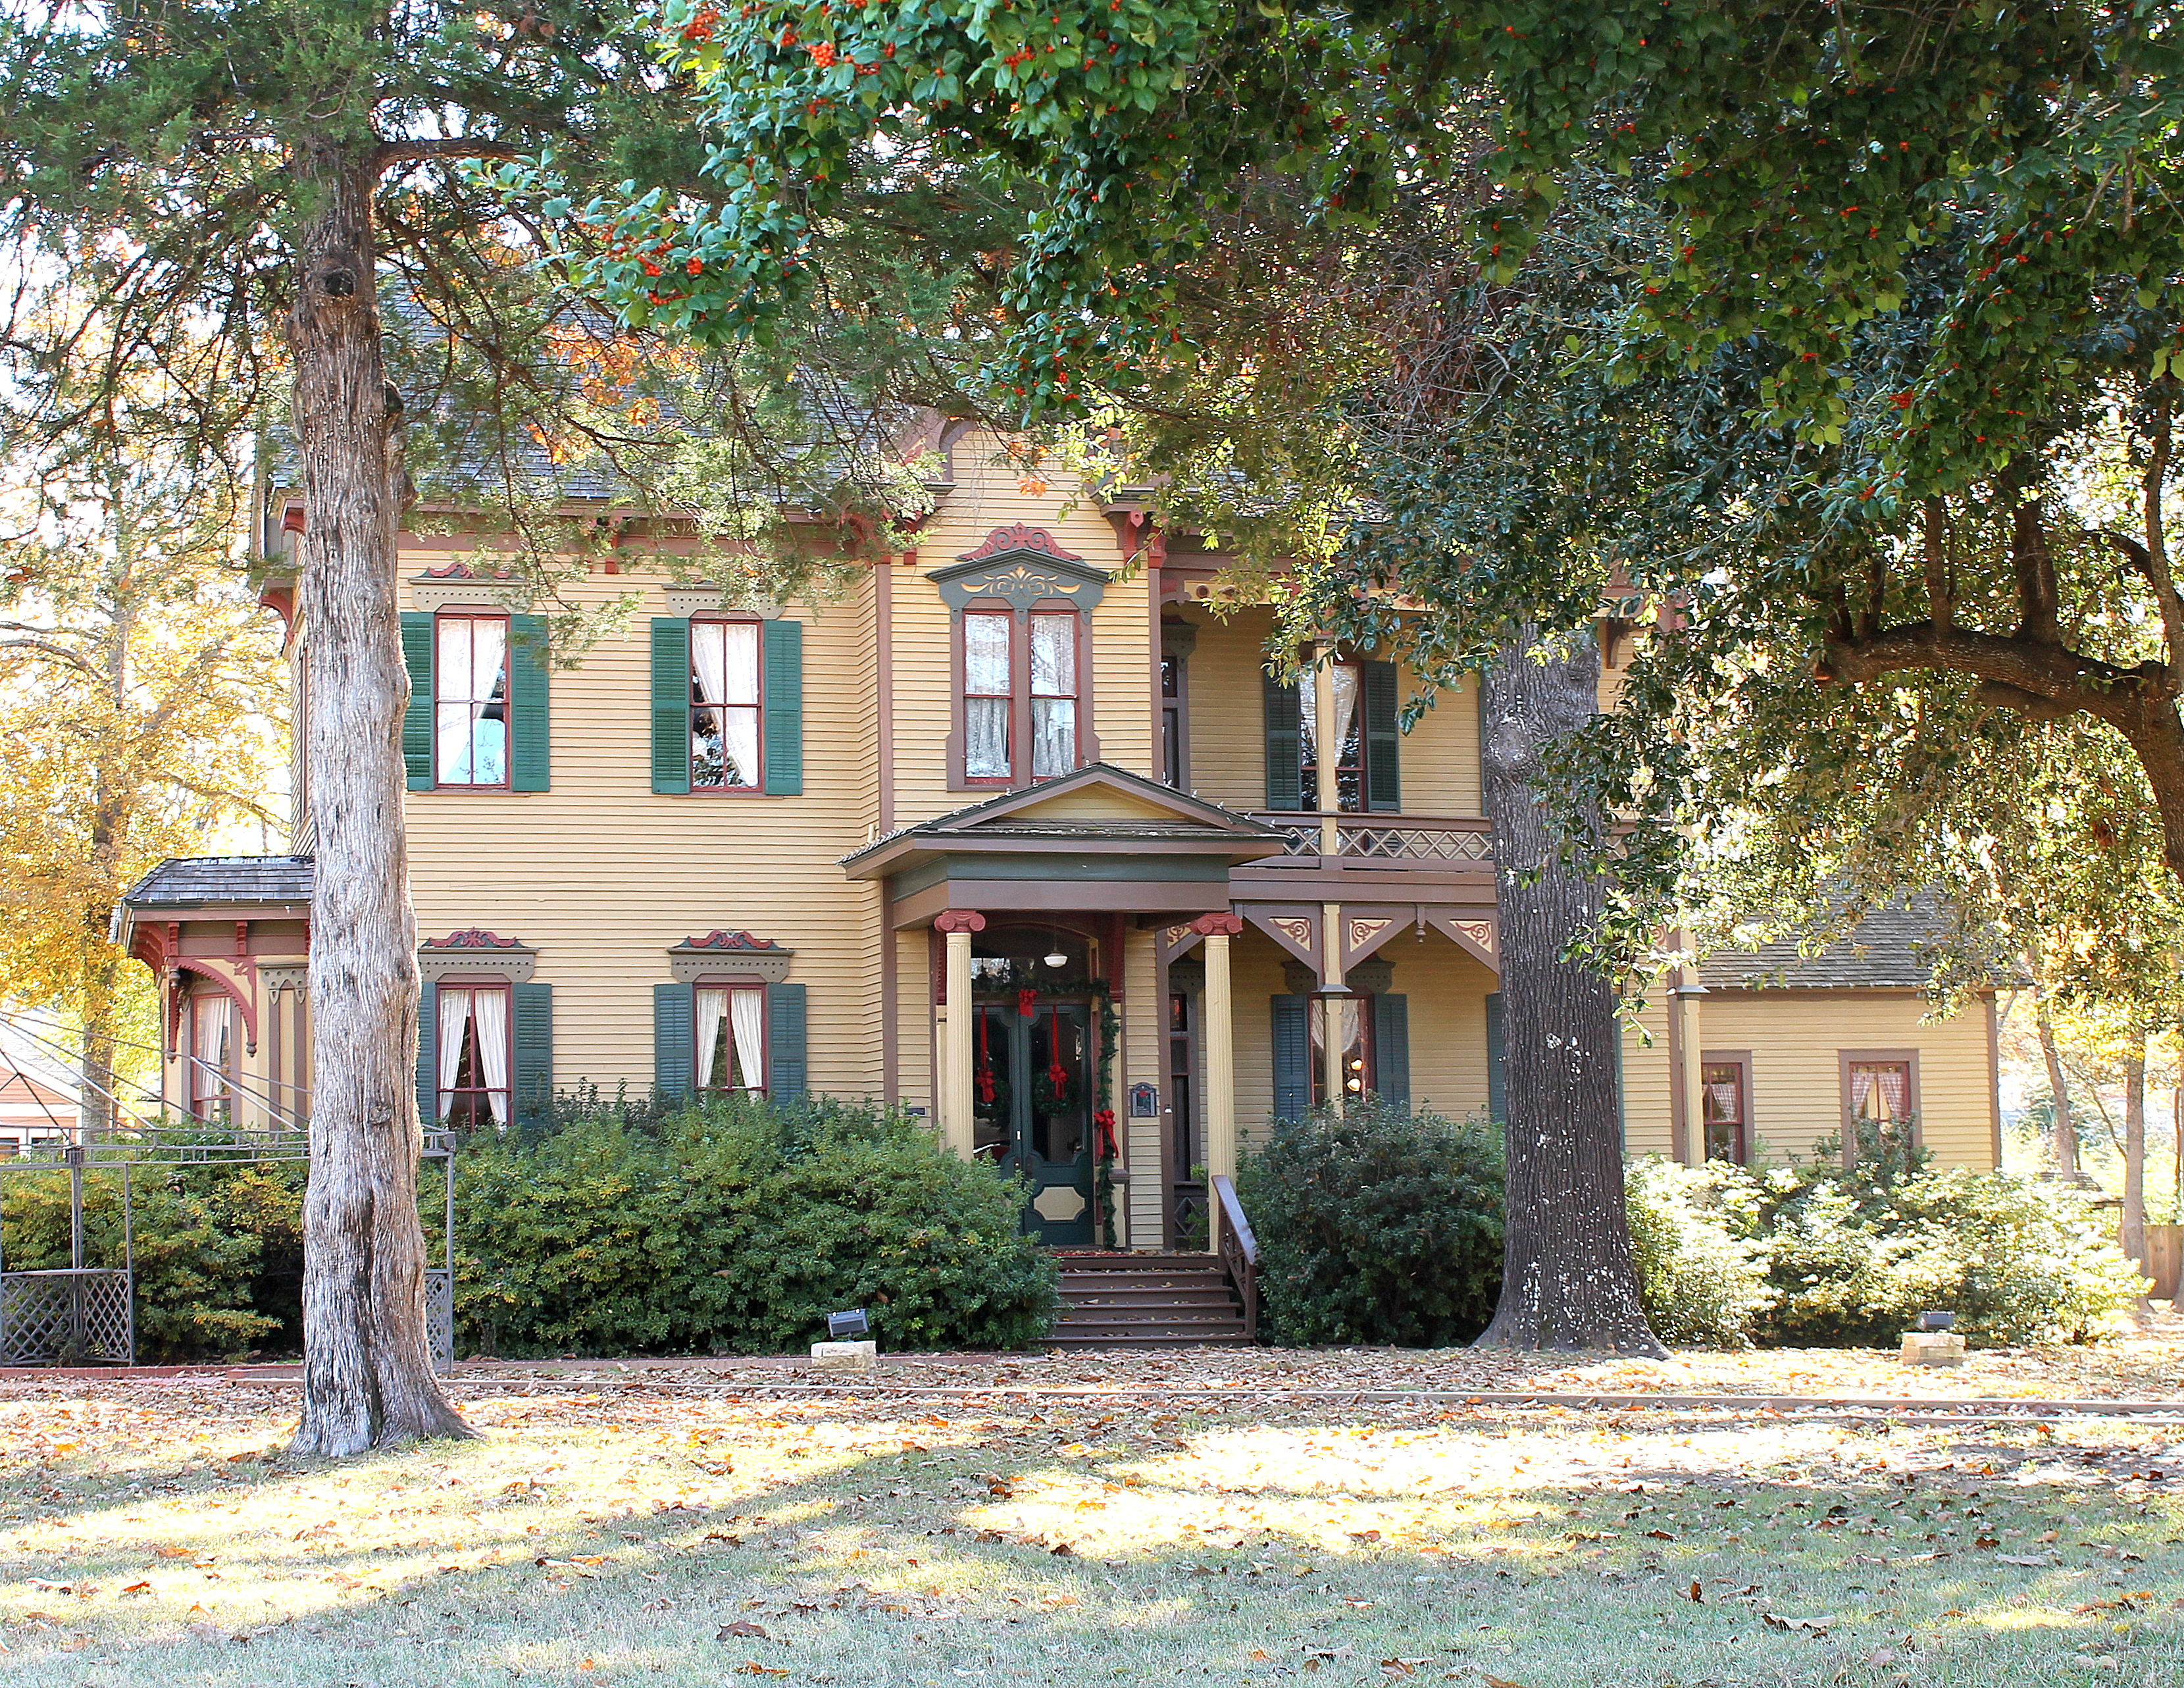 The Whitaker-McClendon House was built in 1880 and is an excellent example of Victorian architecture.